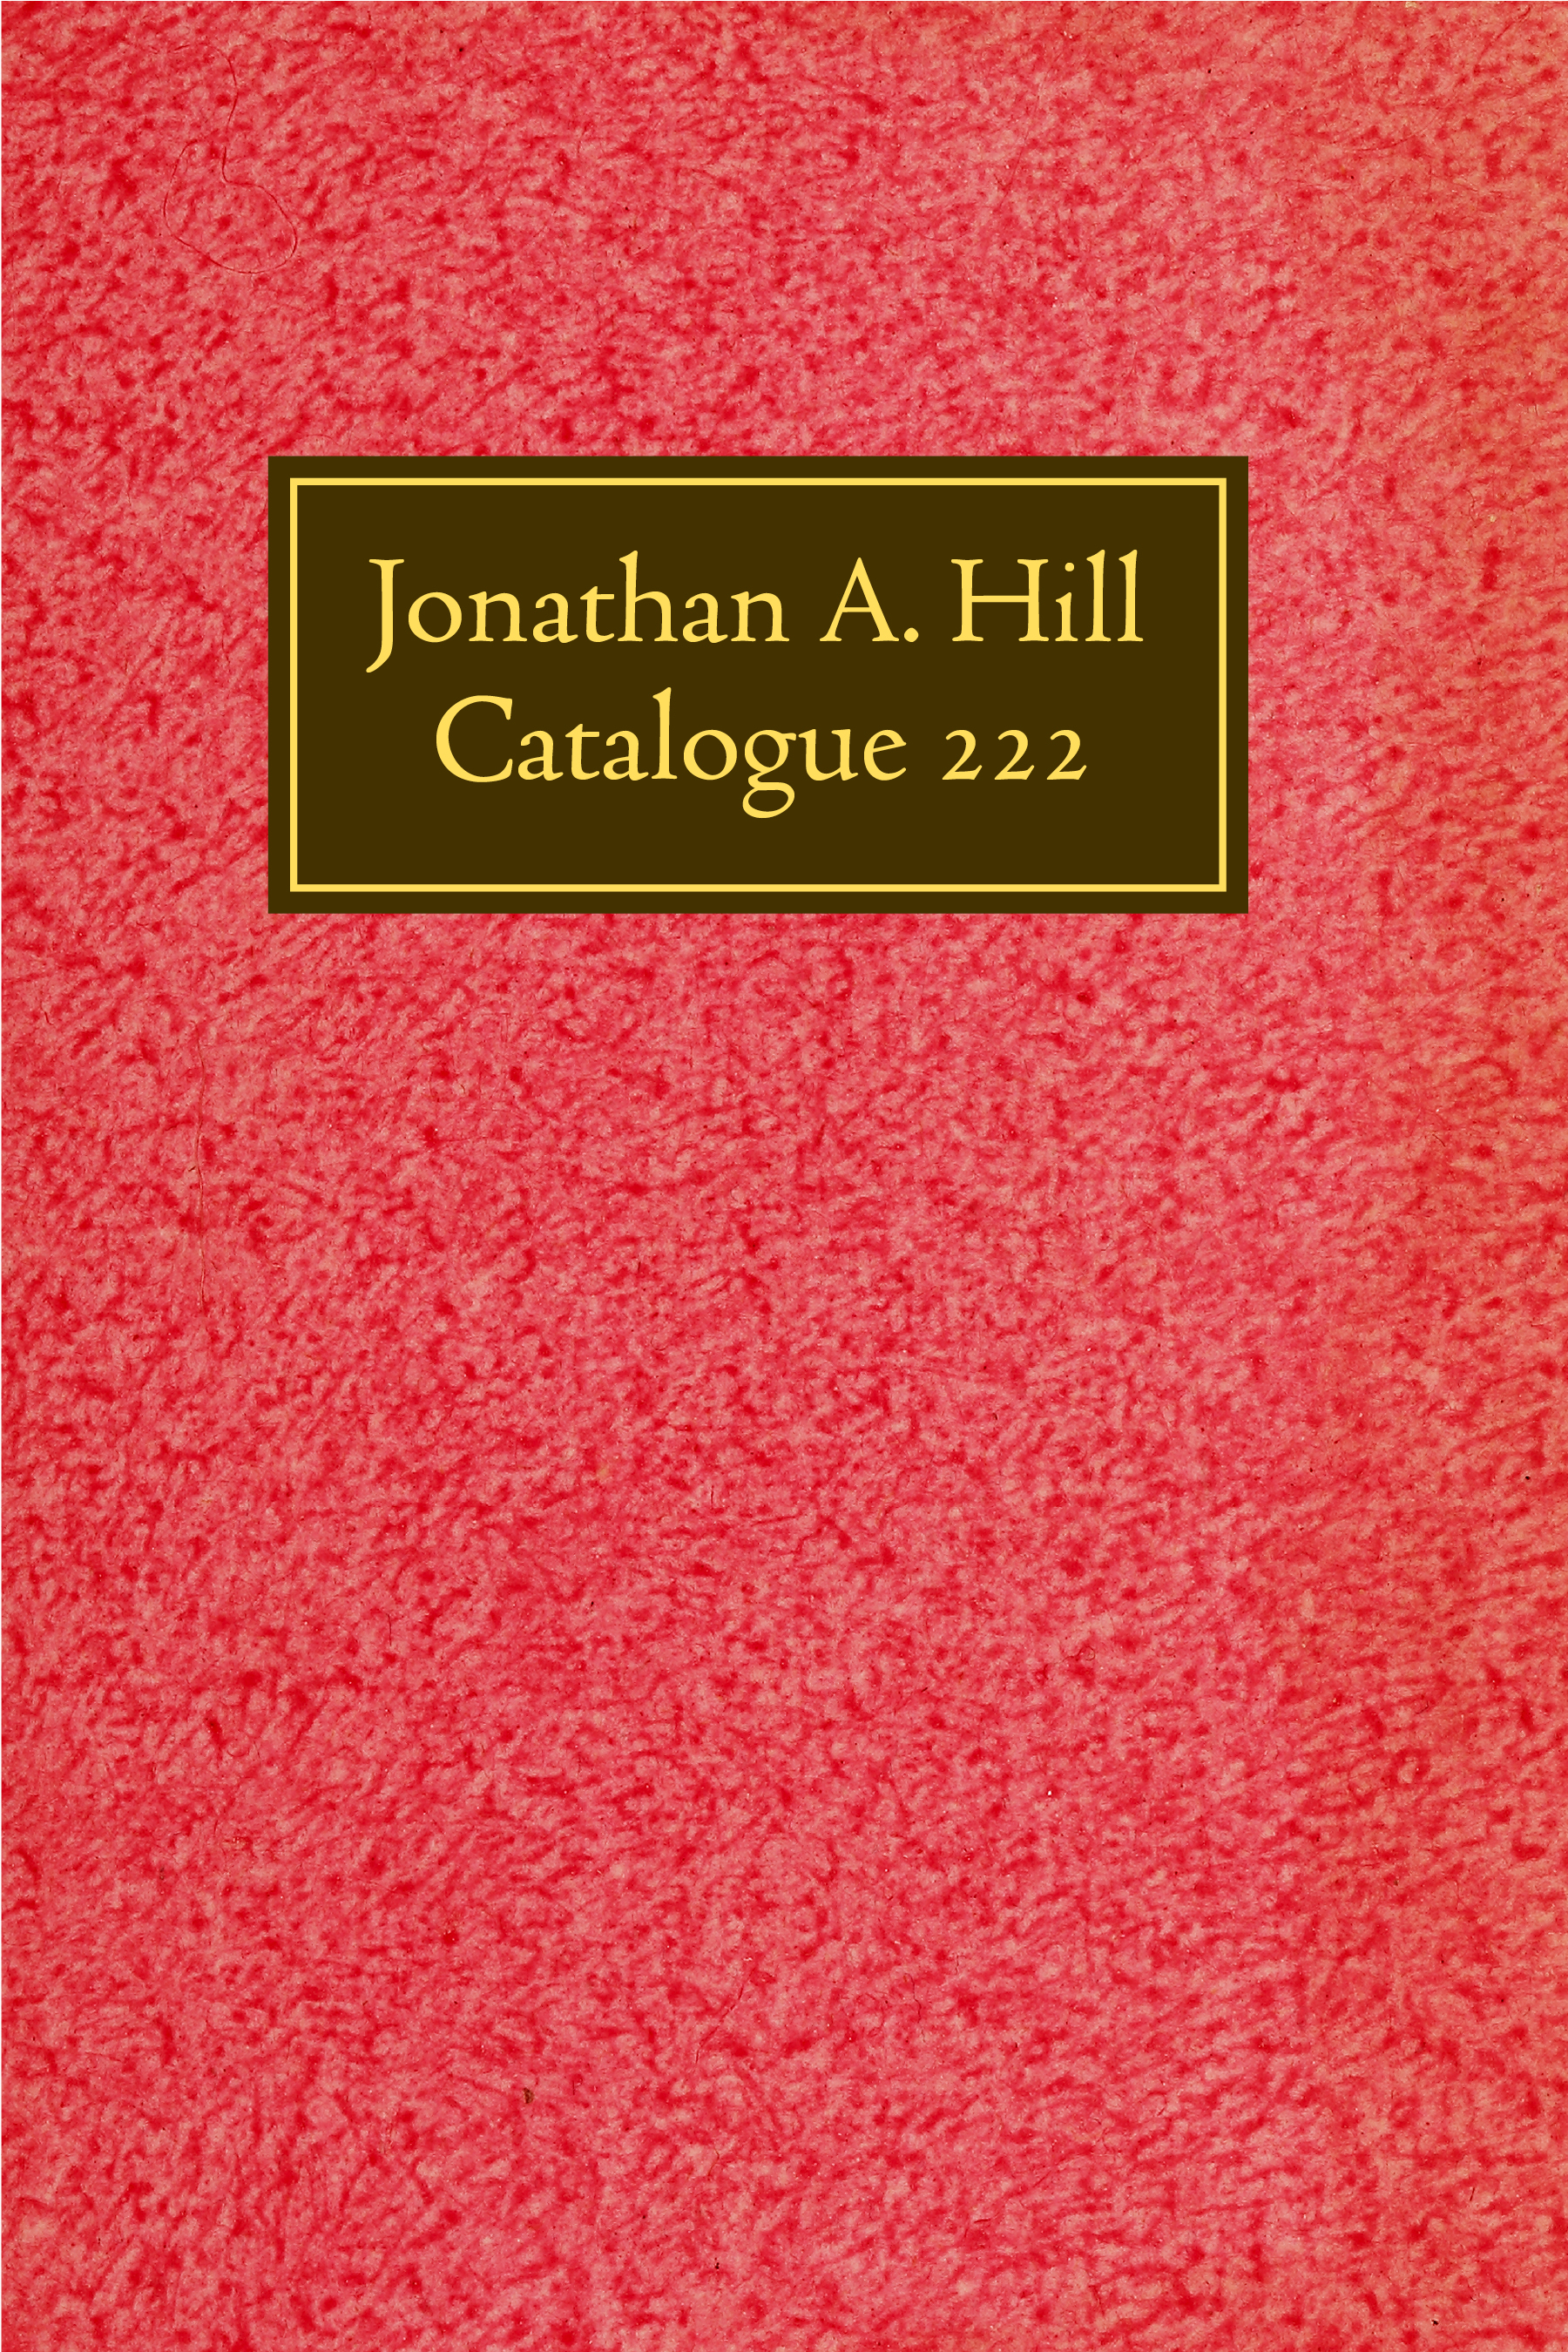 Catalogue 222